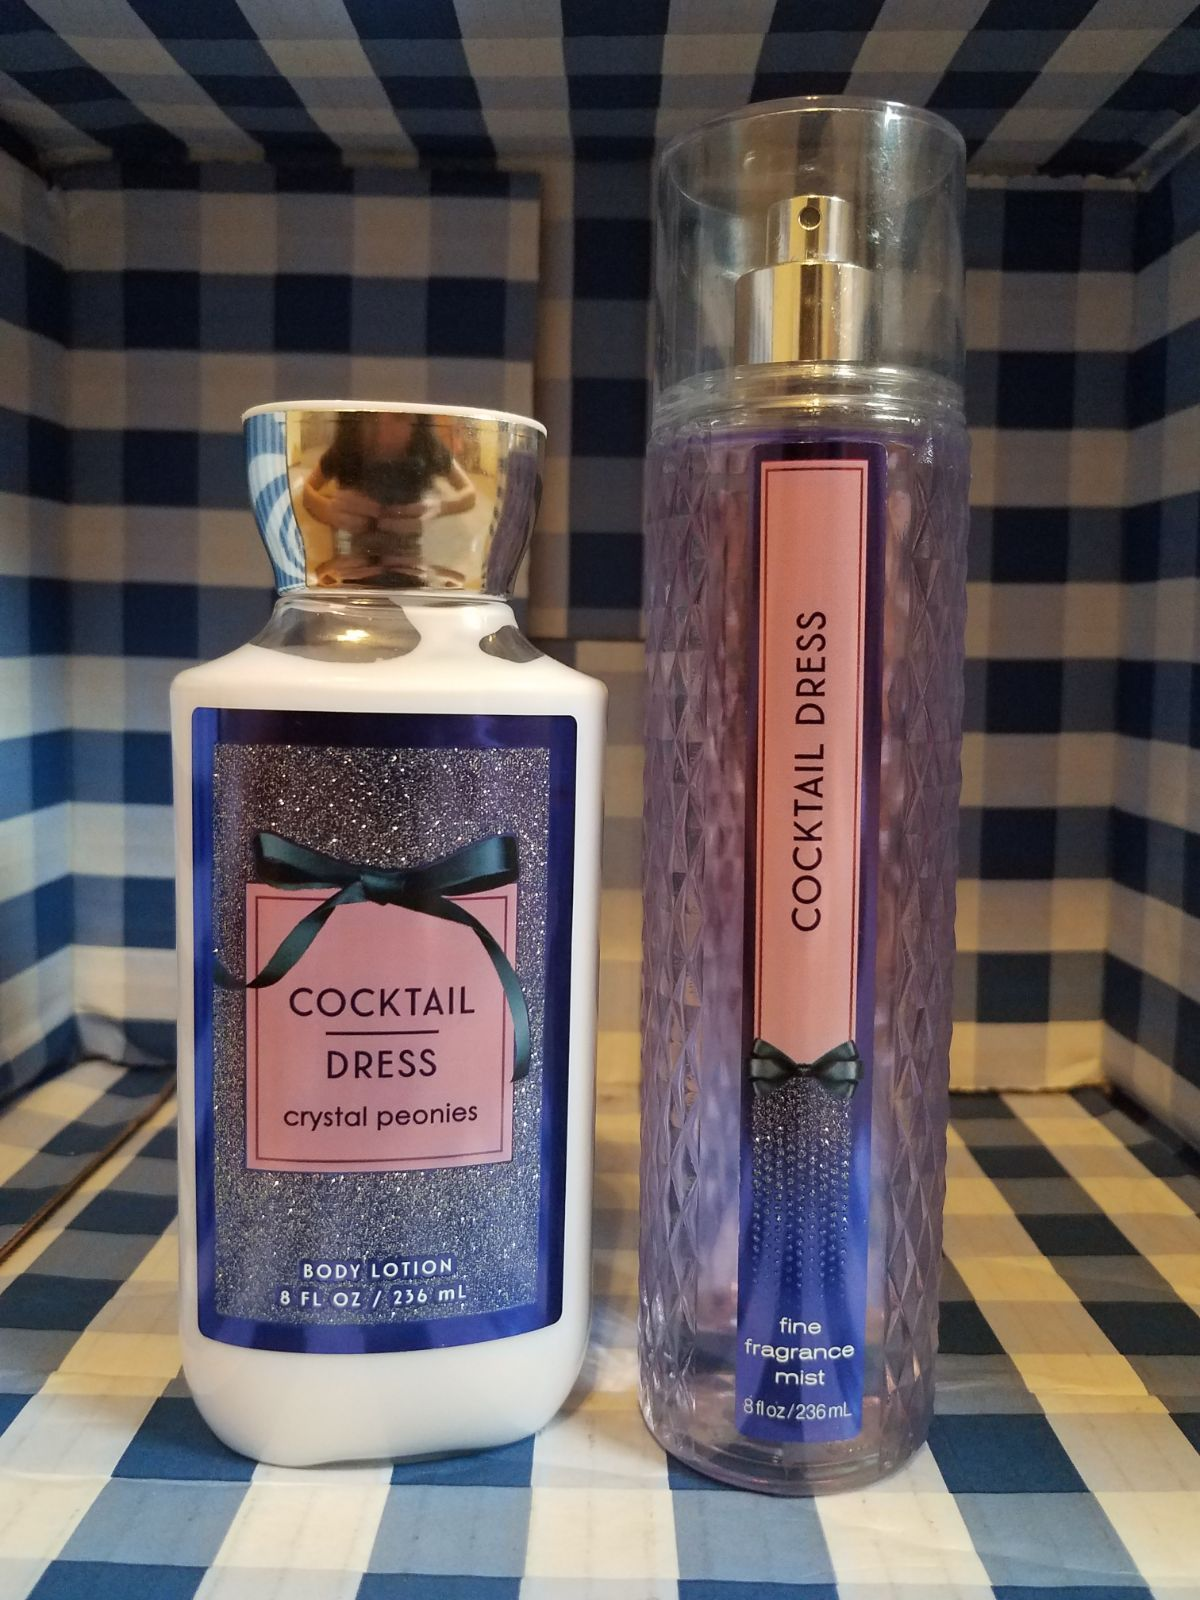 Bath And Body Works Cocktail Dress Set Includes Full Size Body